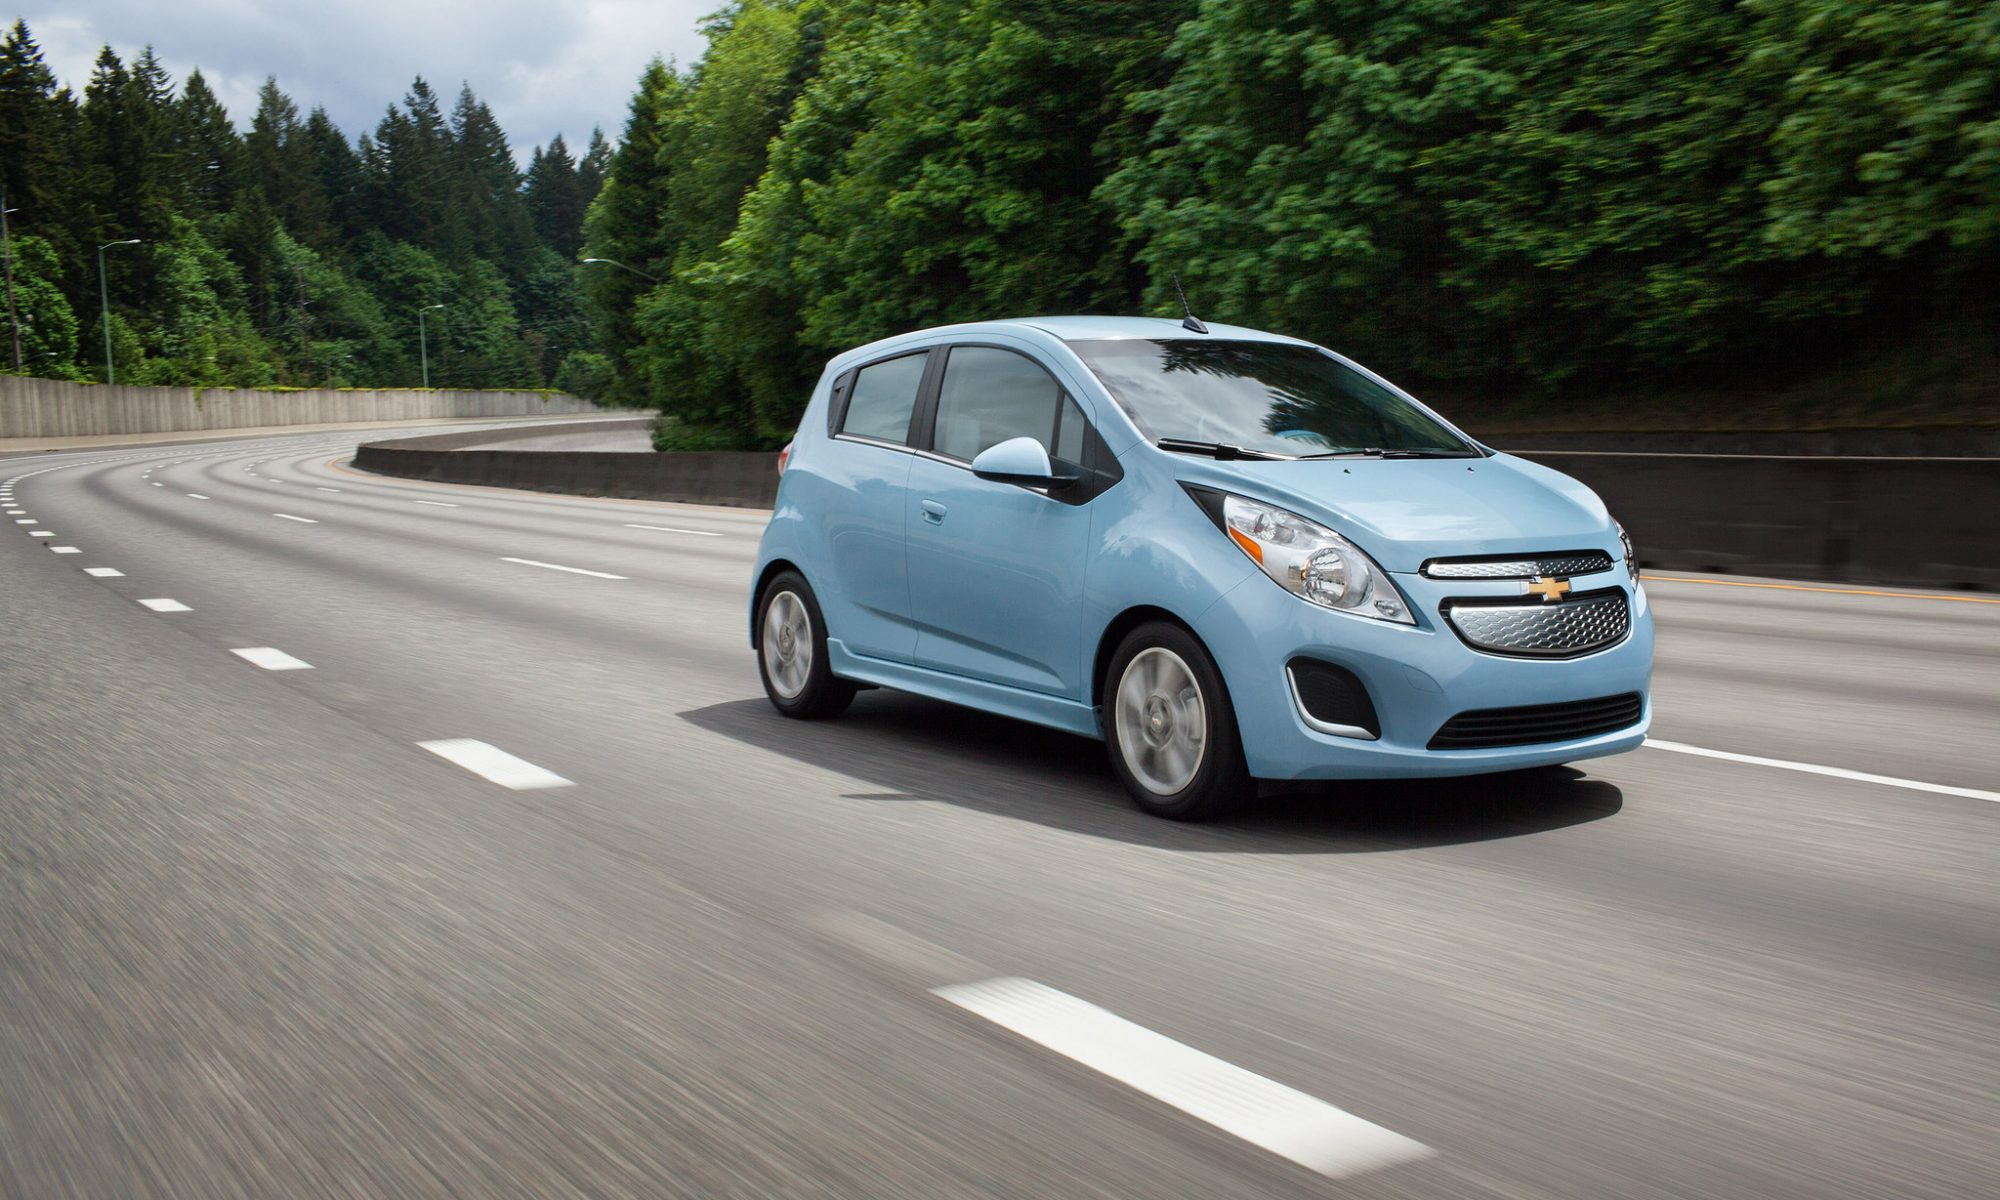 difference between the Chevy Sonic and Spark